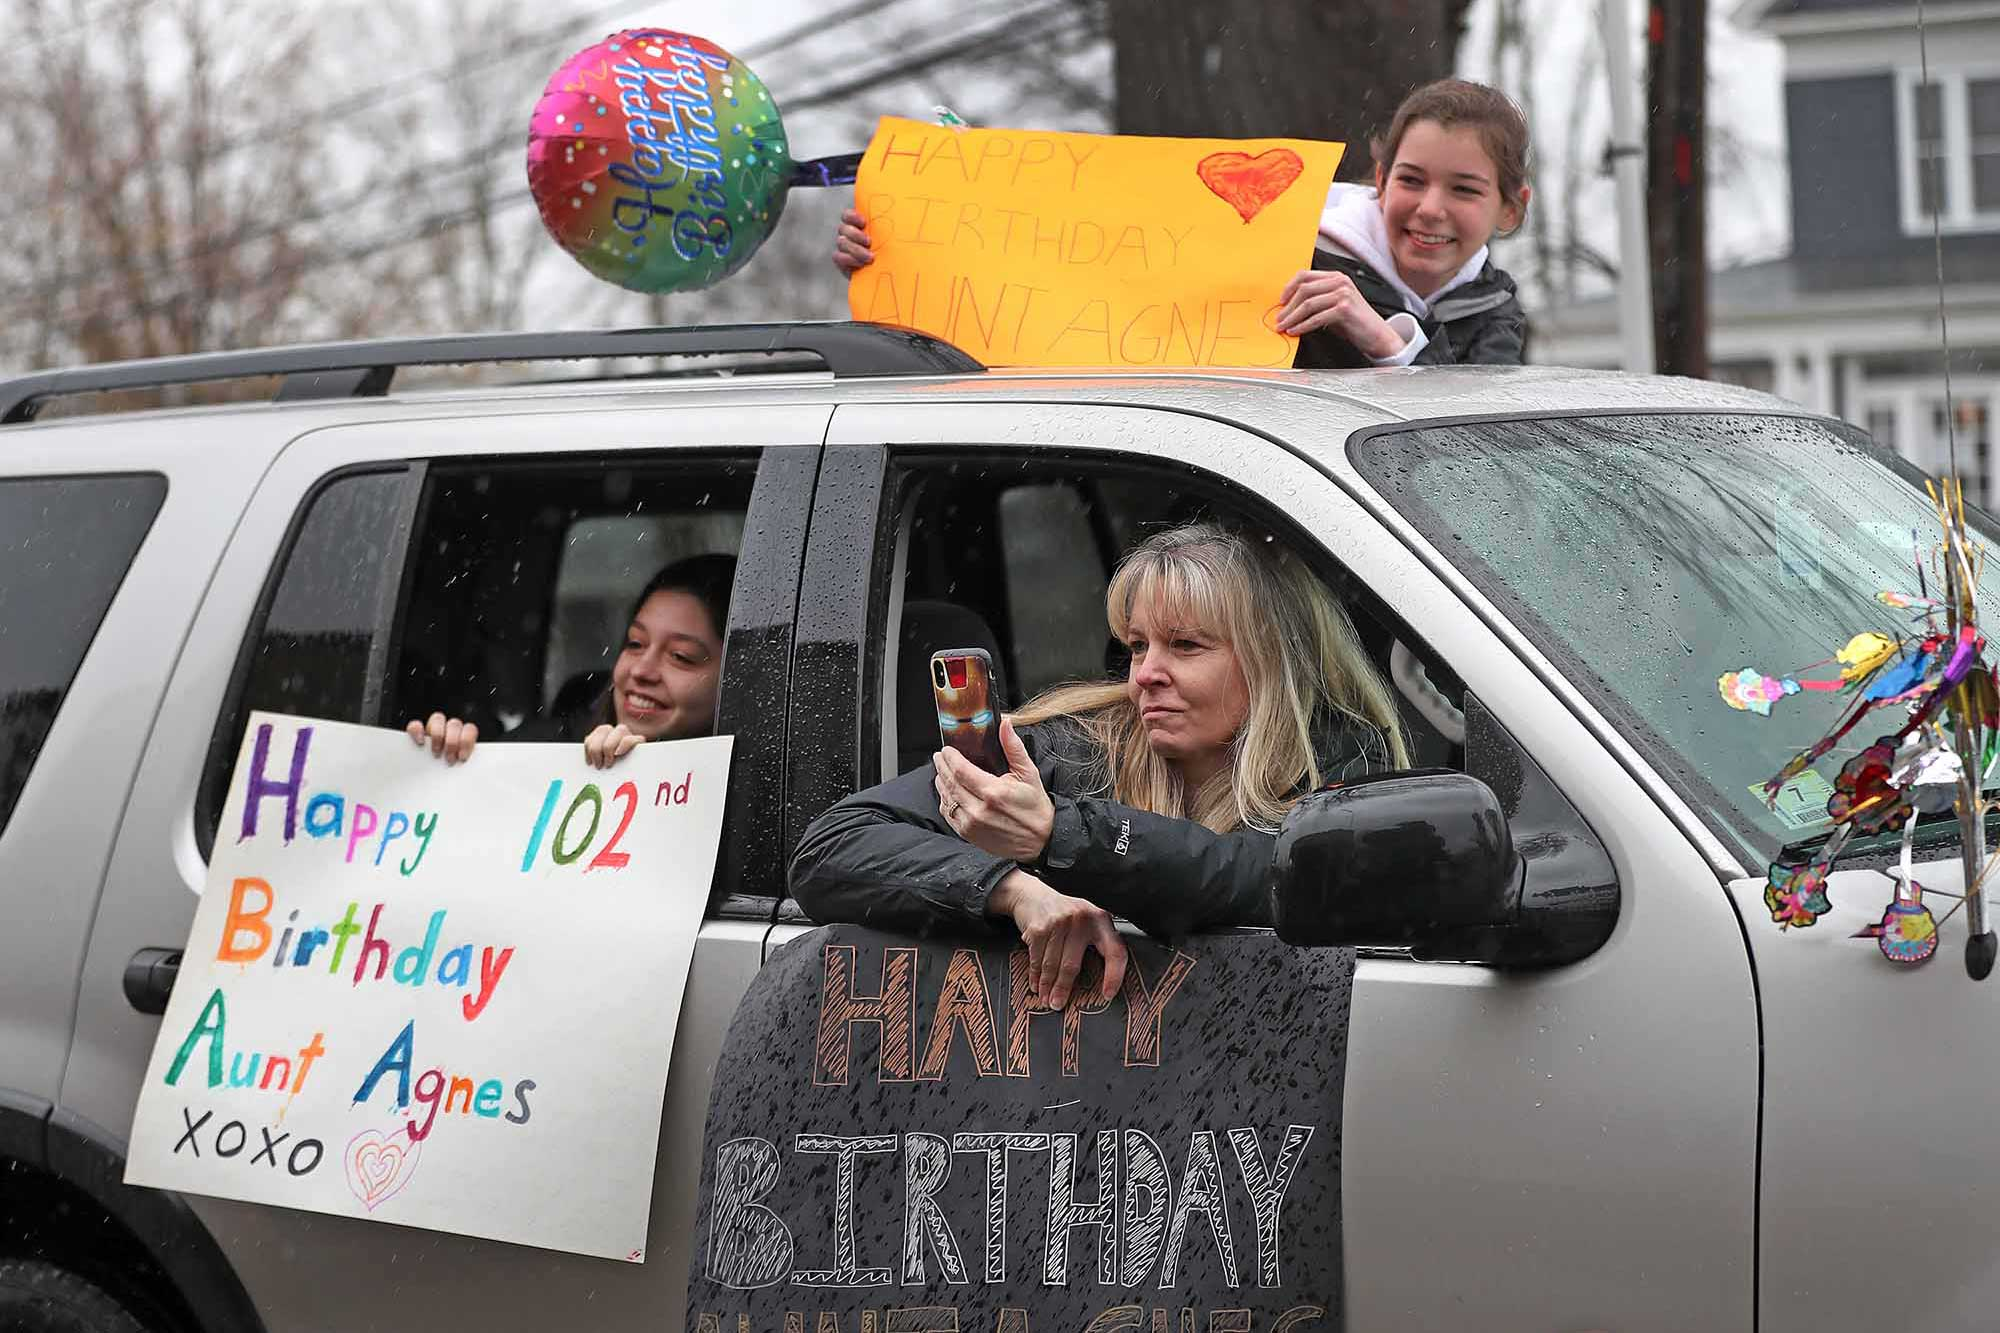 Three people hold colorful birthday signs outside of a car window.